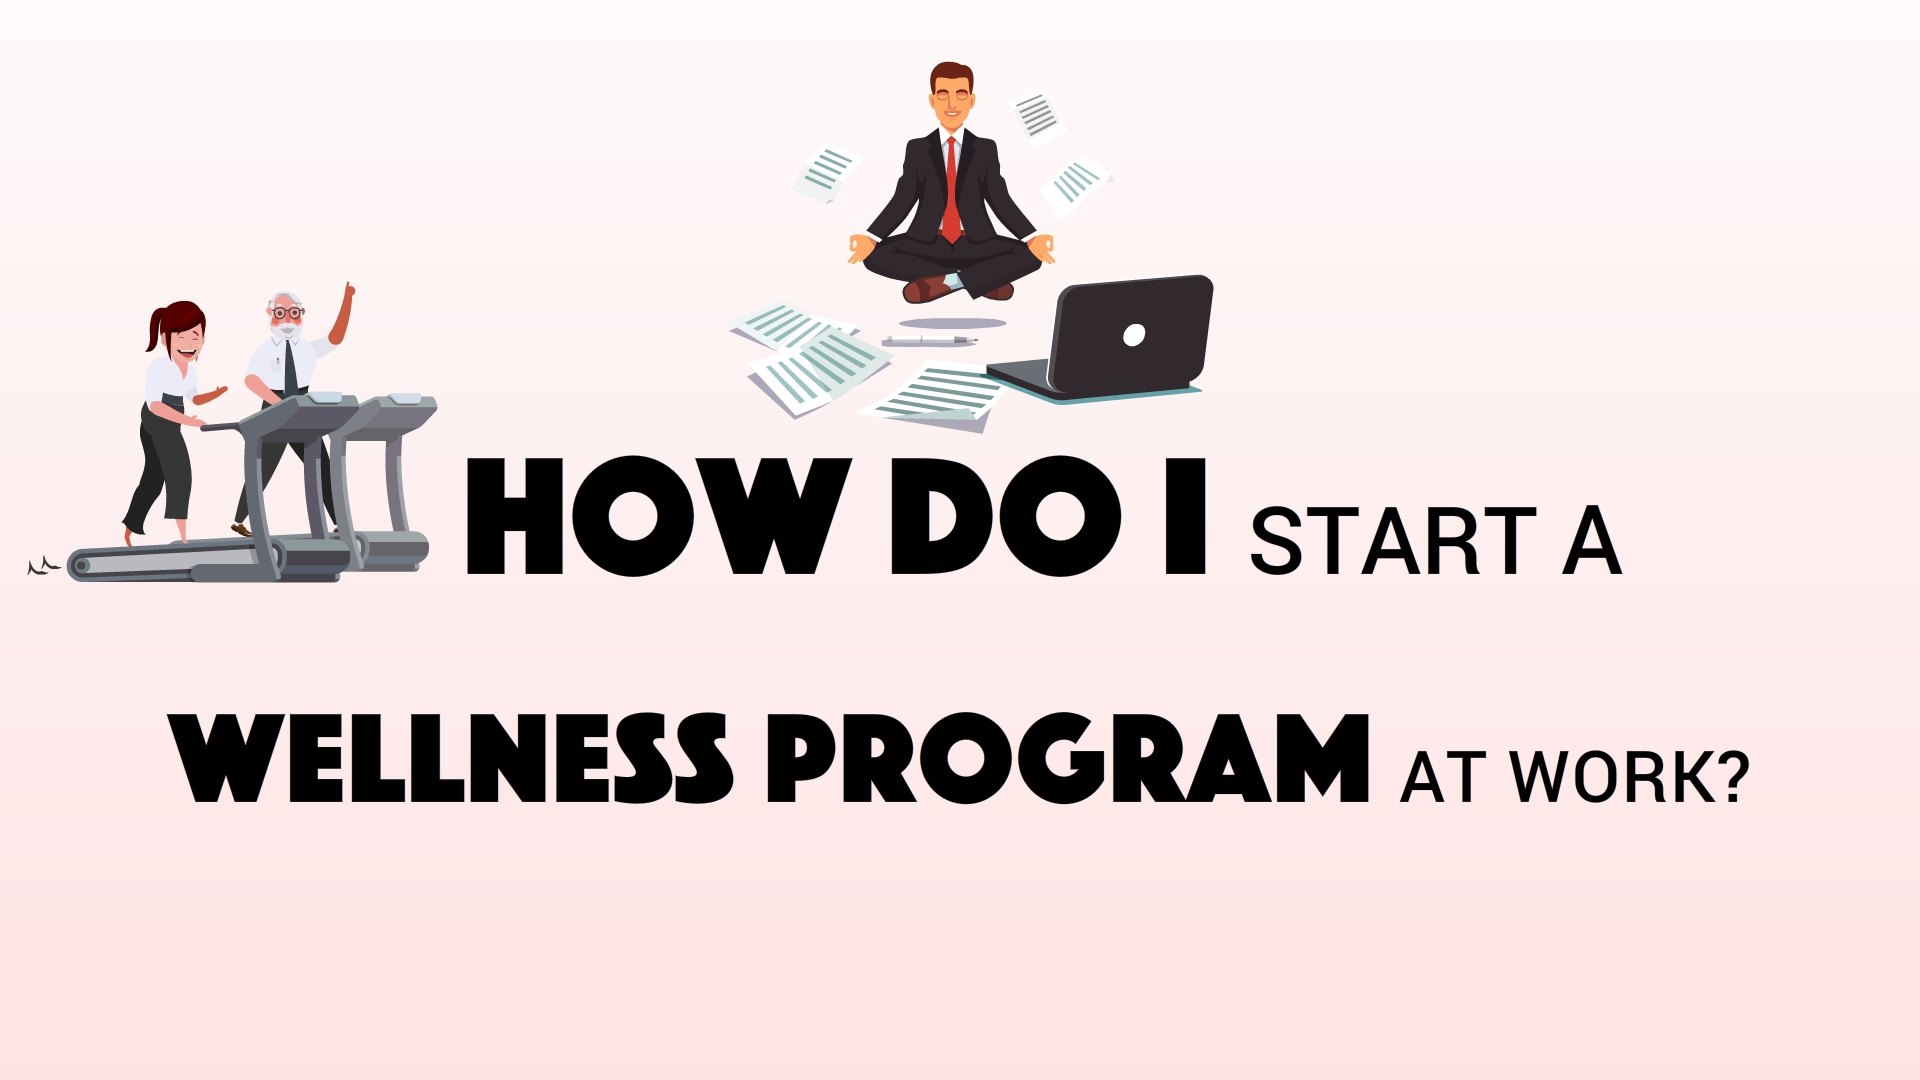 How-to-start-a-wellness-program-at-work